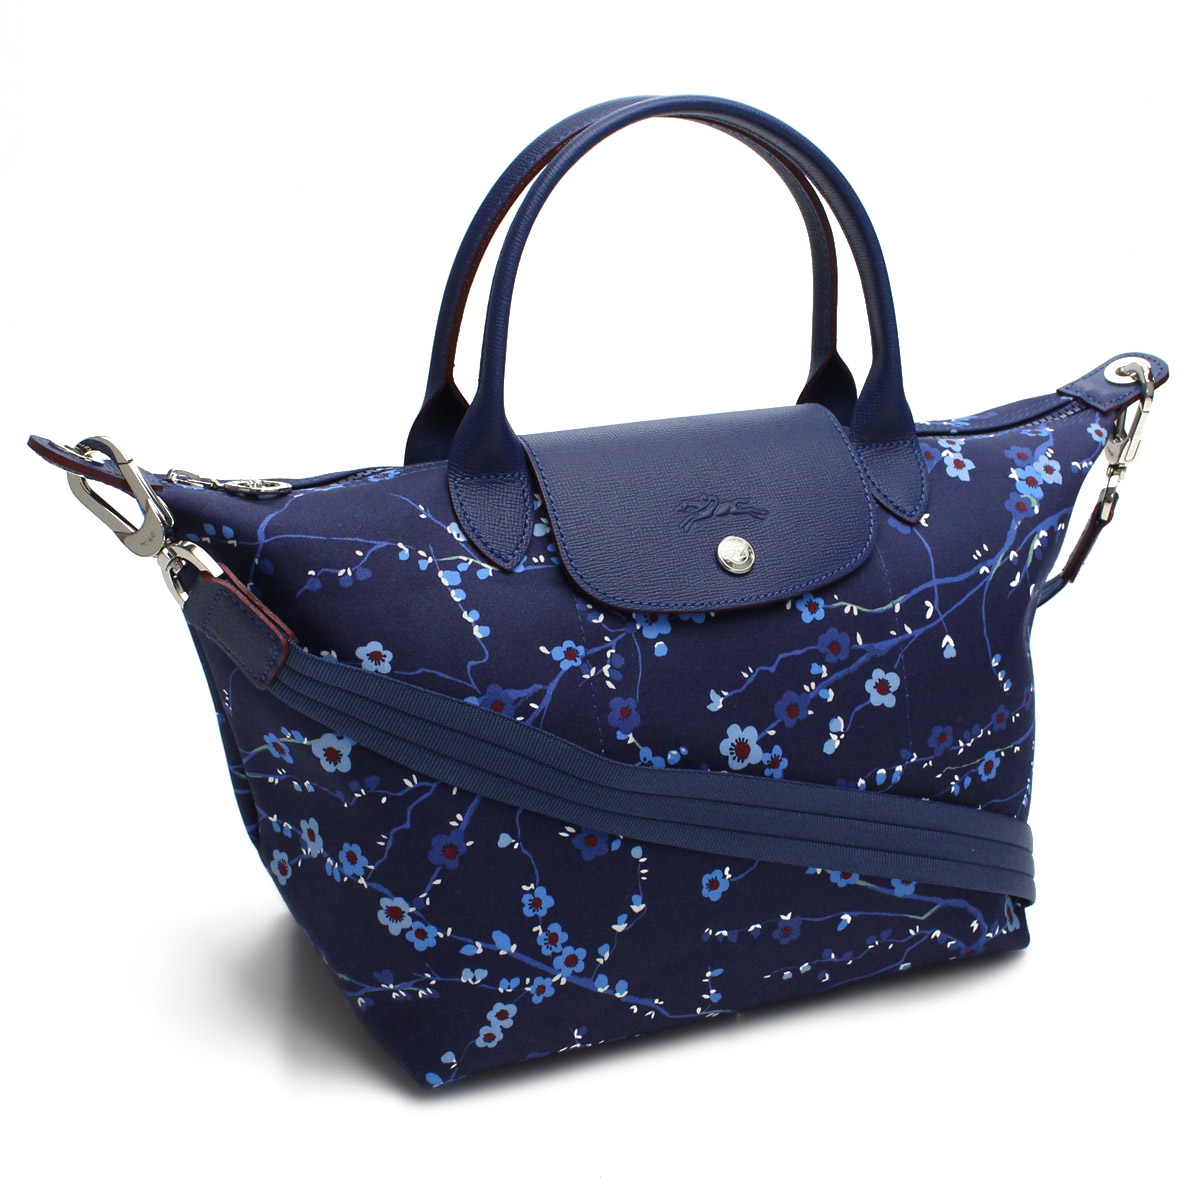 9f56631a0 Bighit The total brand wholesale: Longchamp (LONGCHAMP) Le PLIAGE NEO  ルプリアージュネオファンテジーサクラ 2way tote bag 1512 634 006 navy system, ...